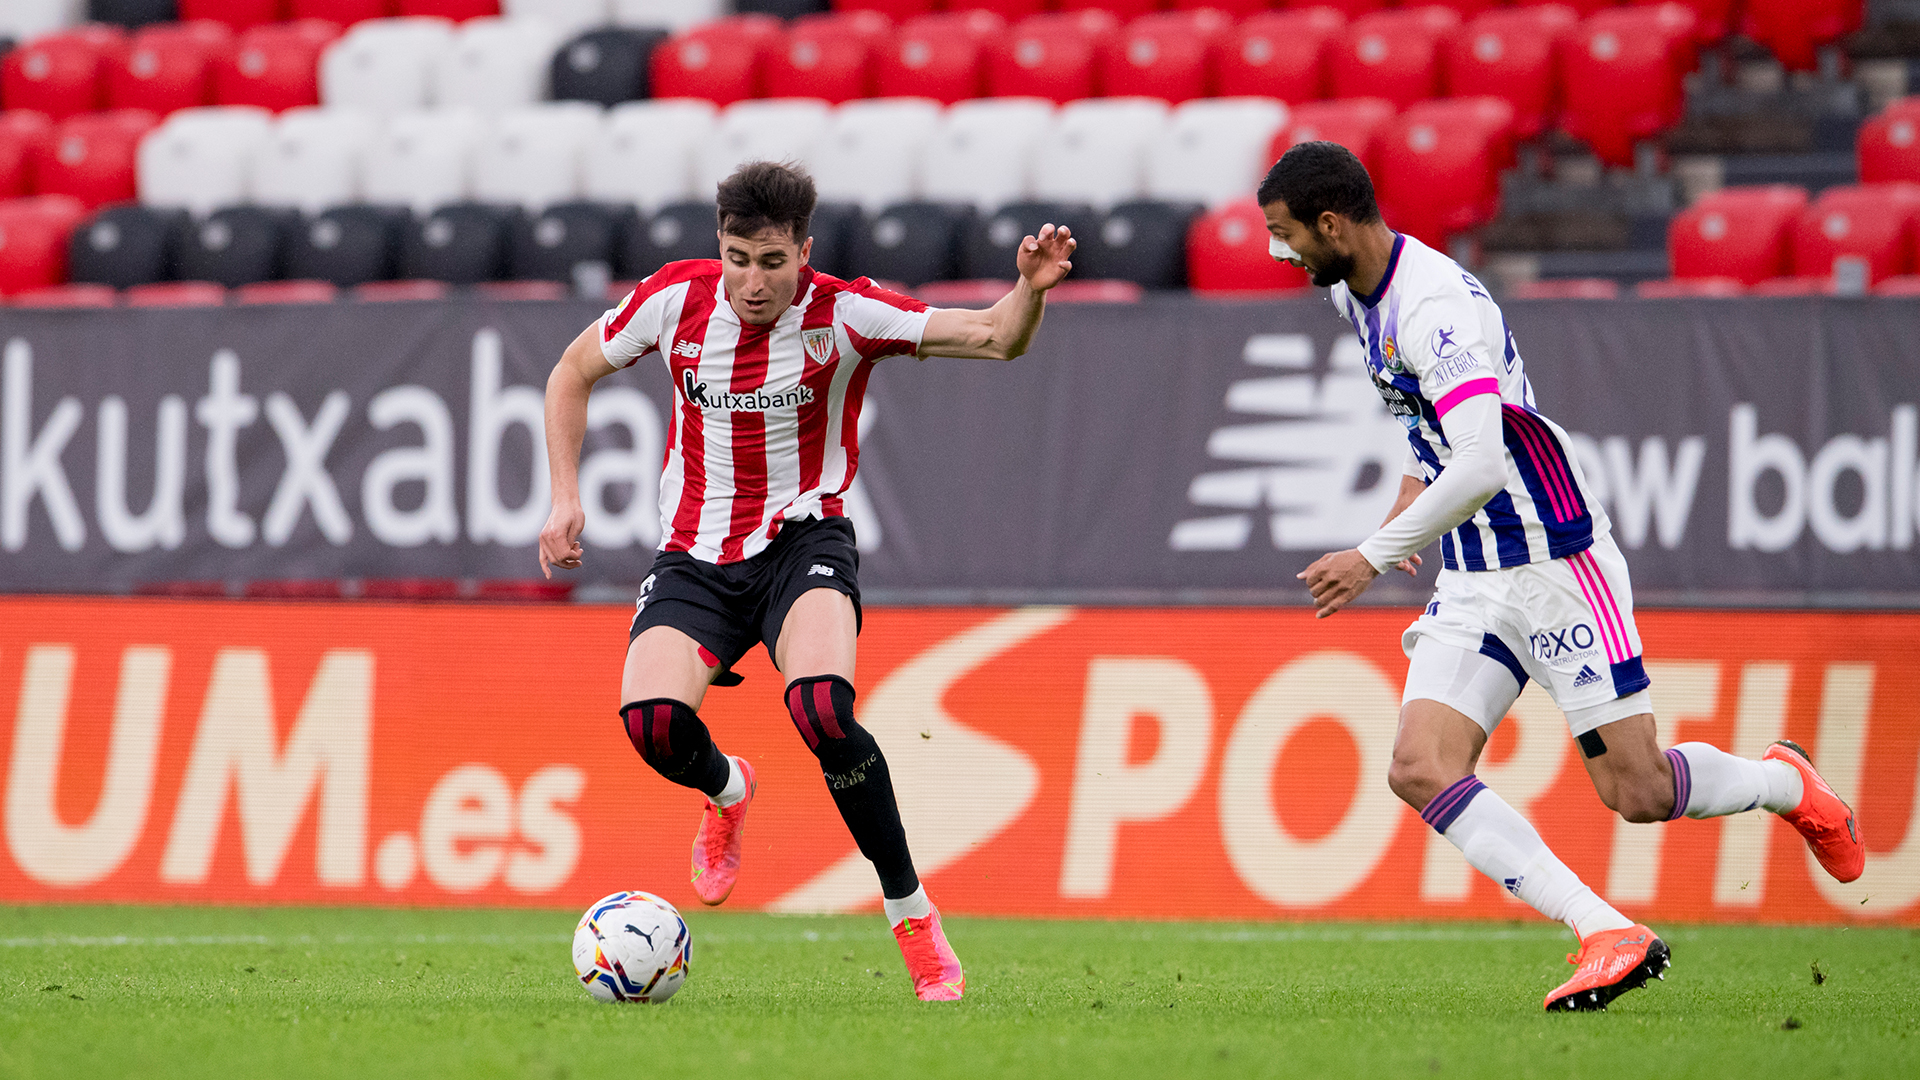 Draw against Real Valladolid at San Mamés